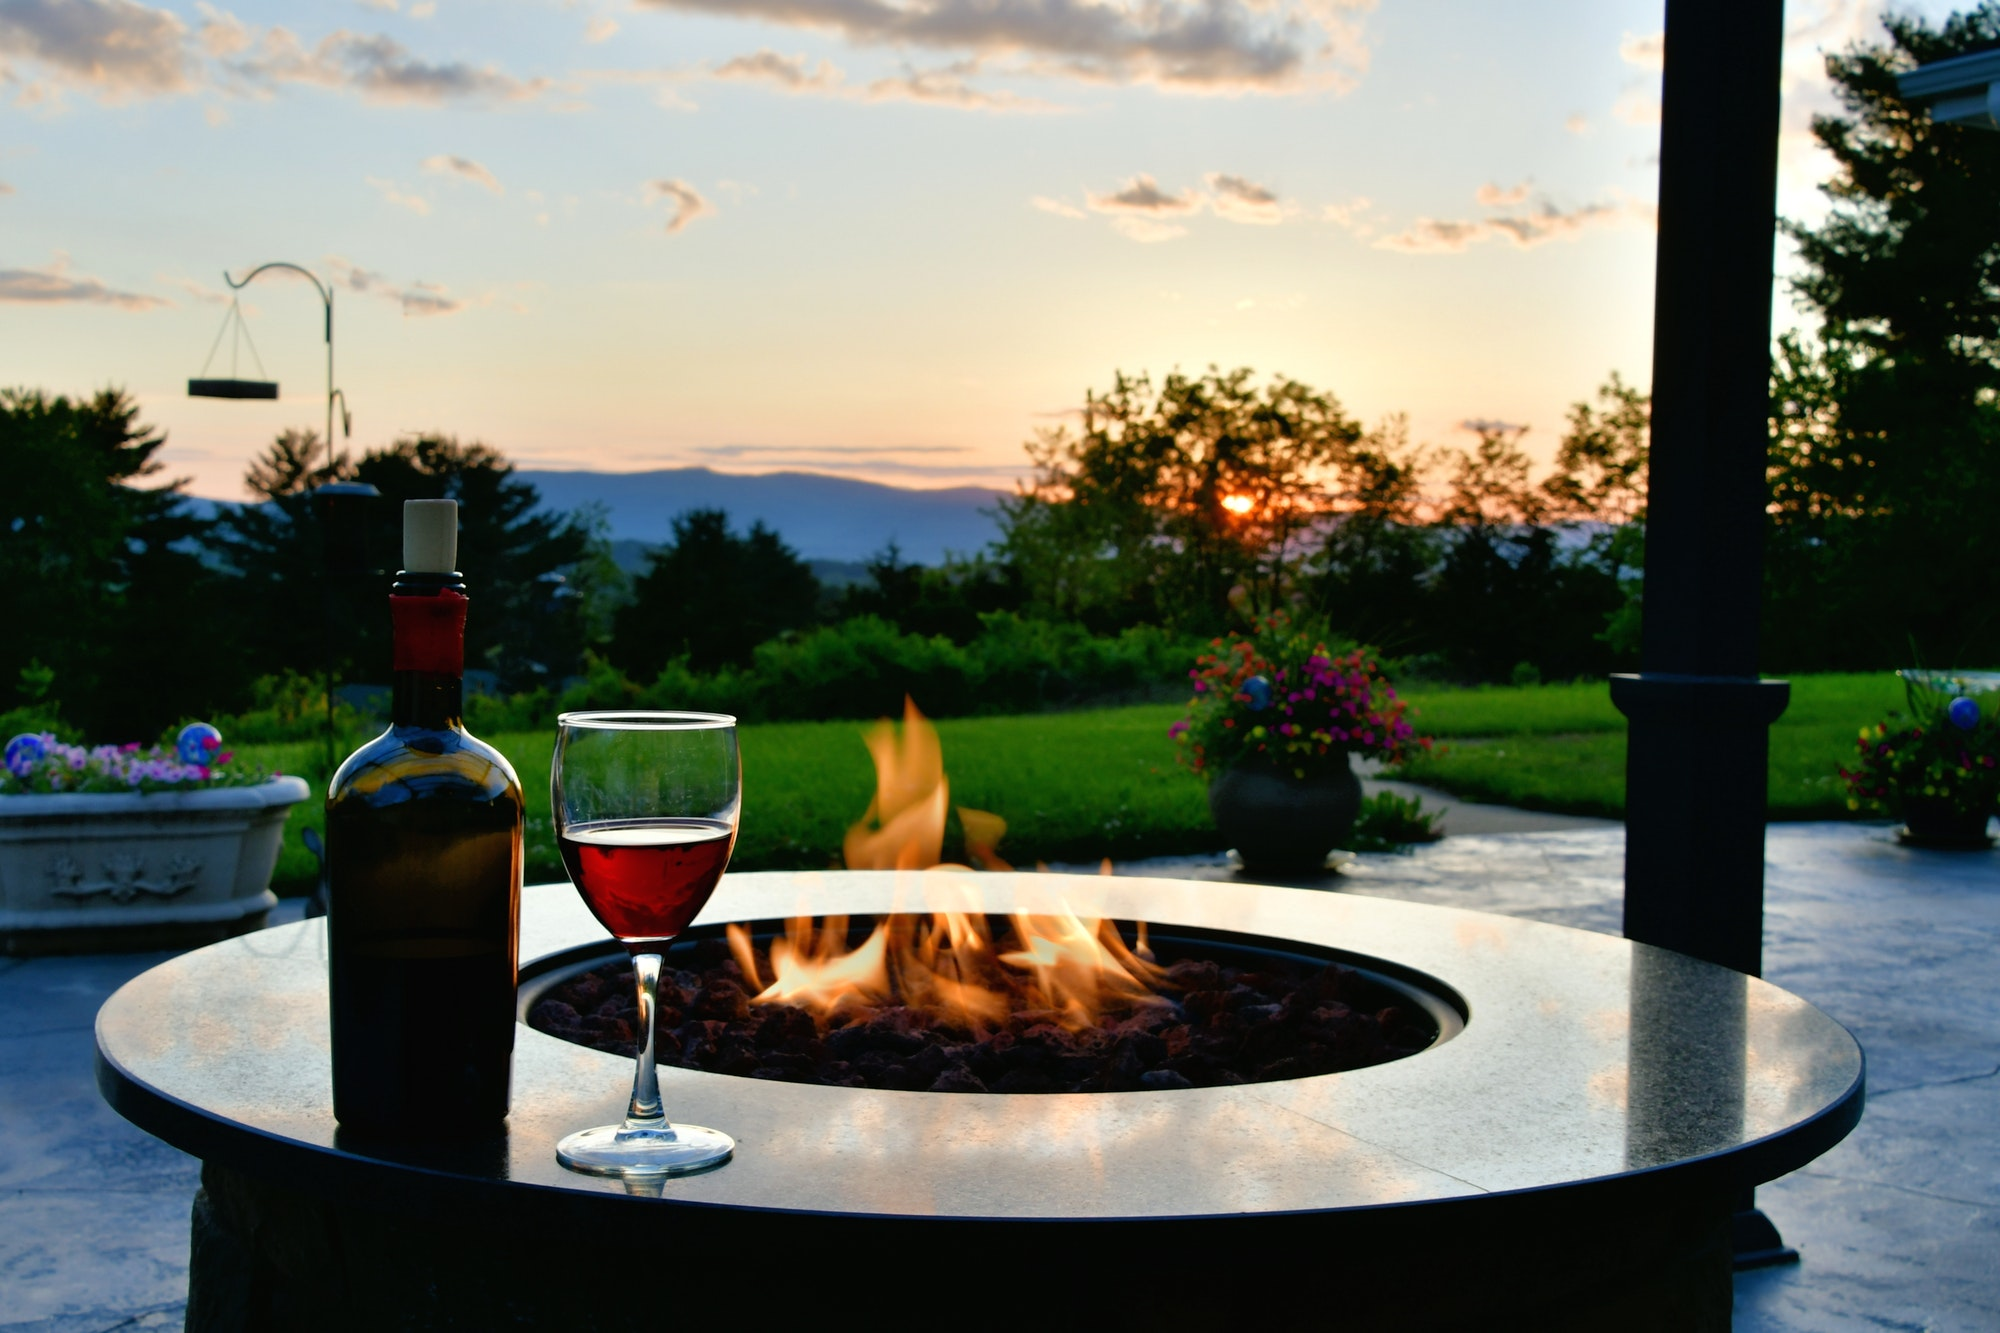 Reds, Whites and Rosés: The Best Wines to Enjoy in the Summer